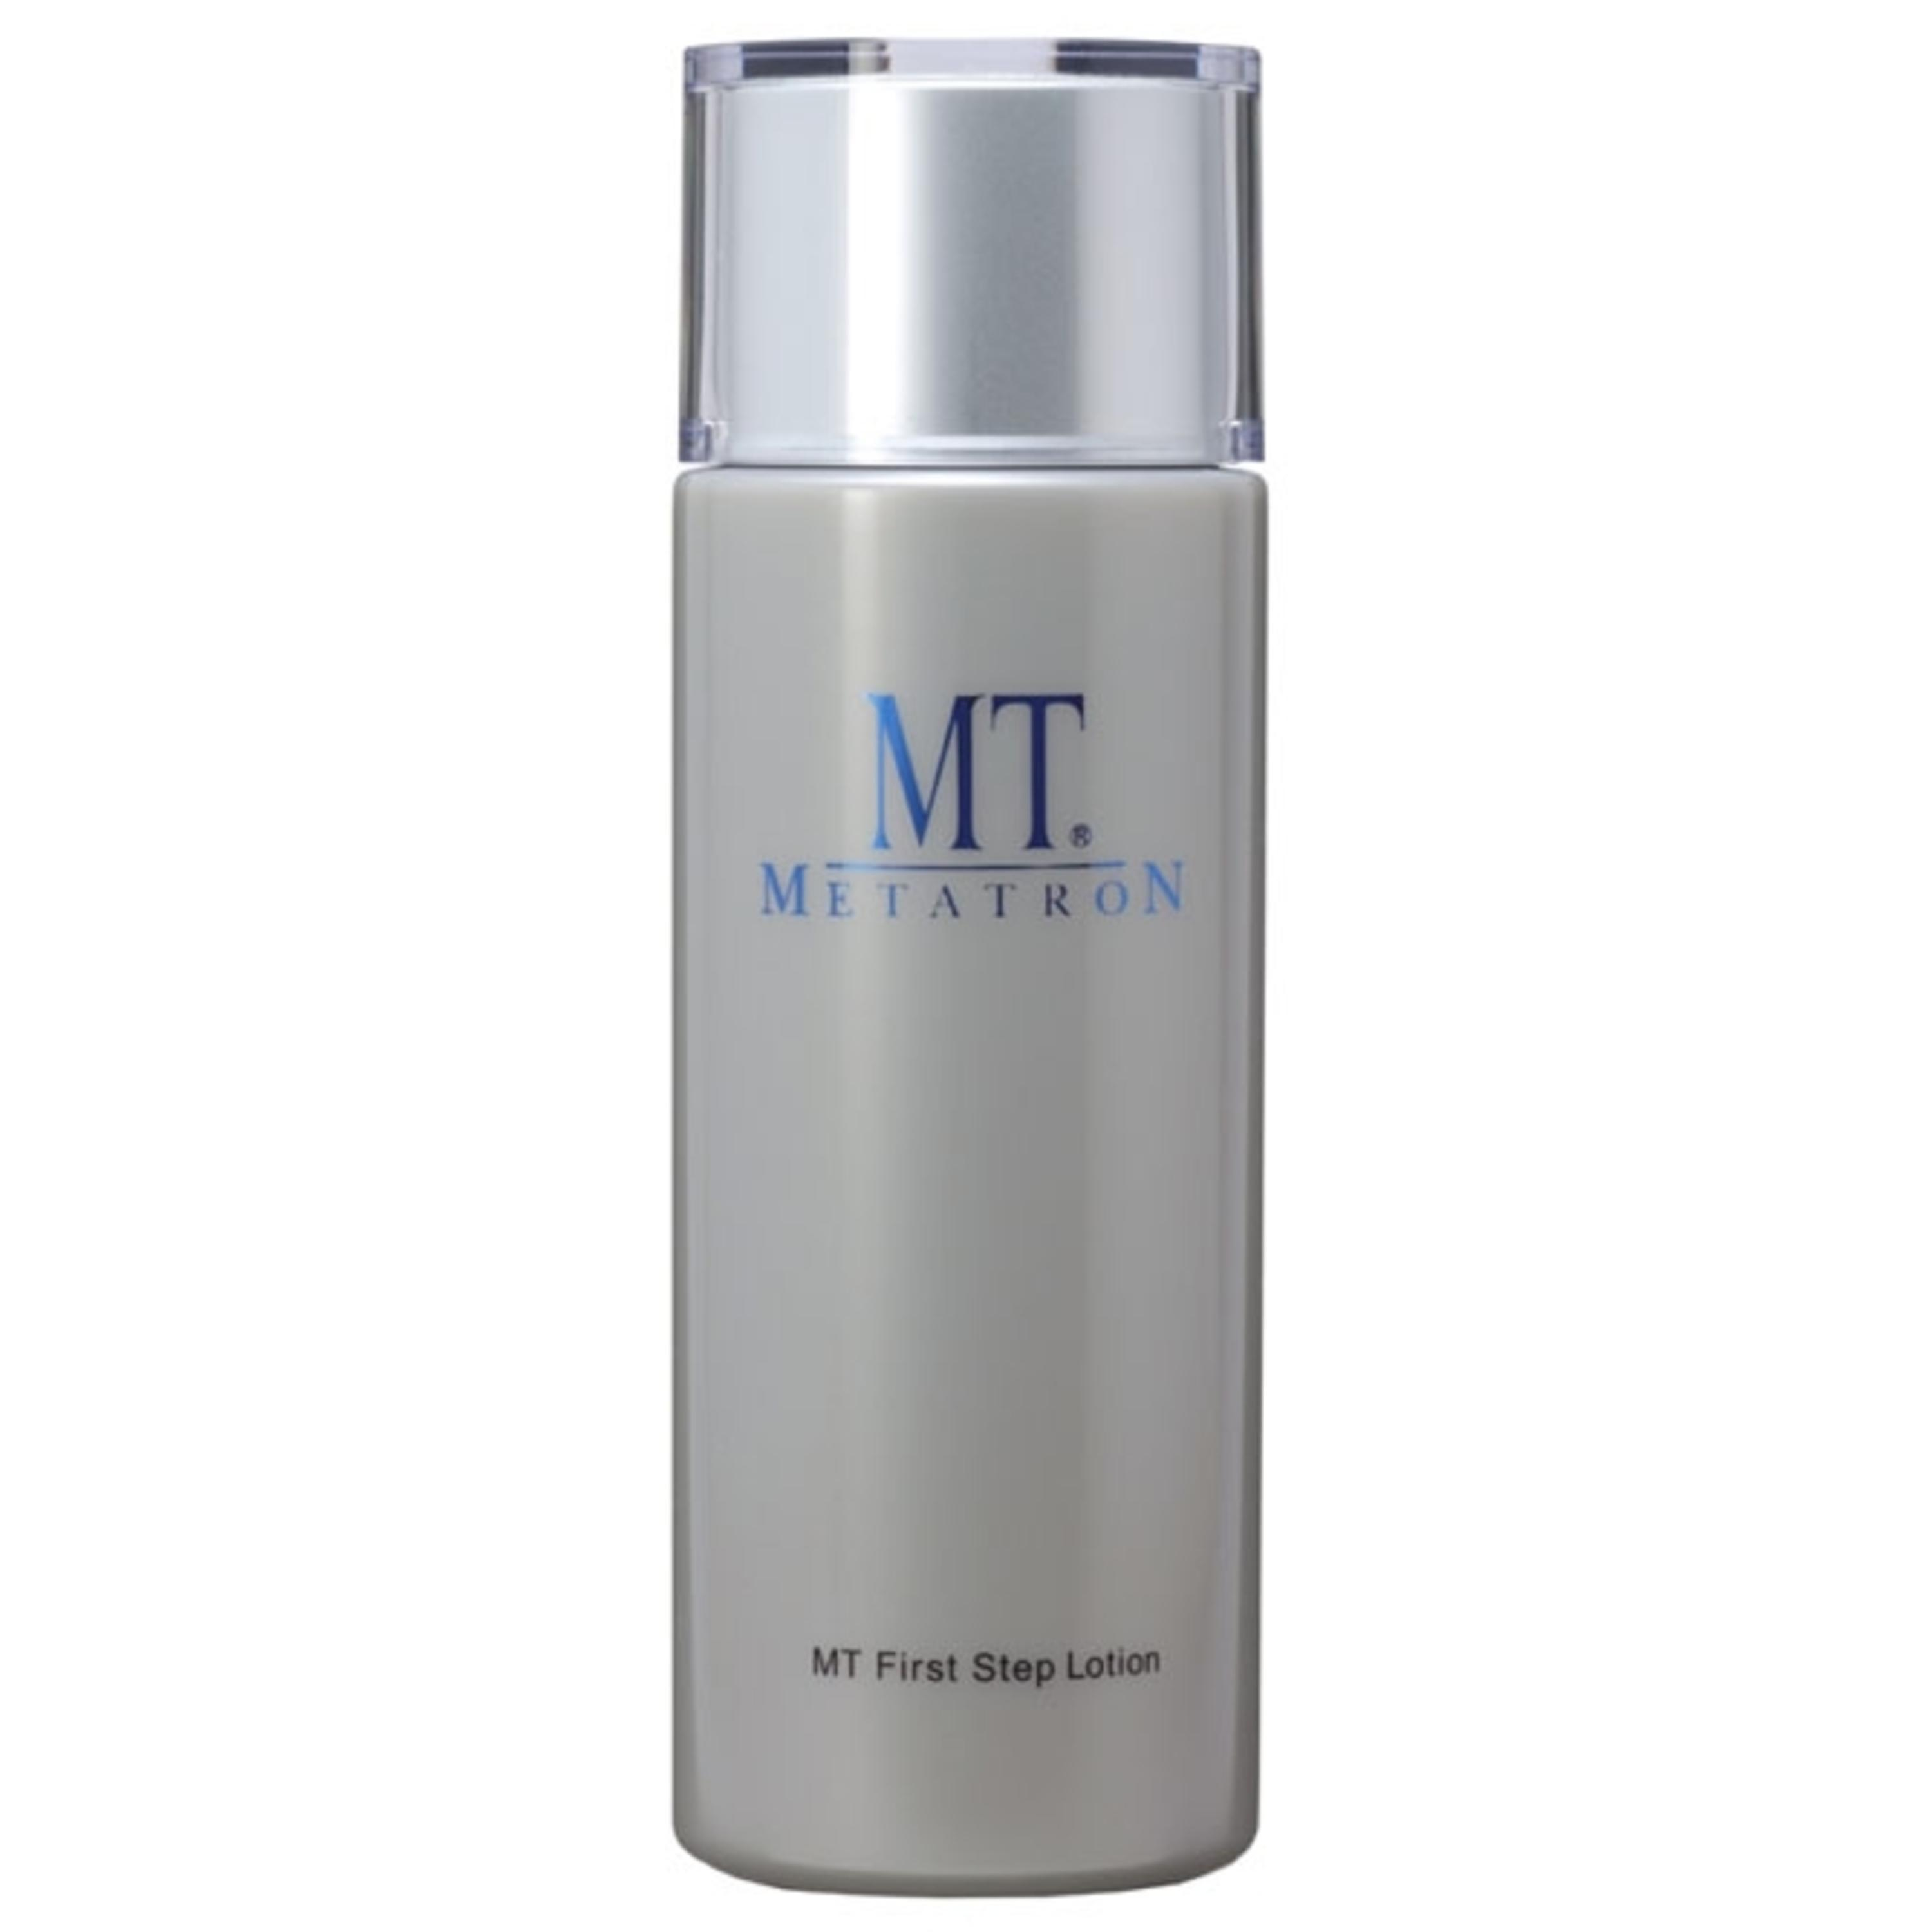 MT MetatroN - First Step Lotion Базовый лосьон